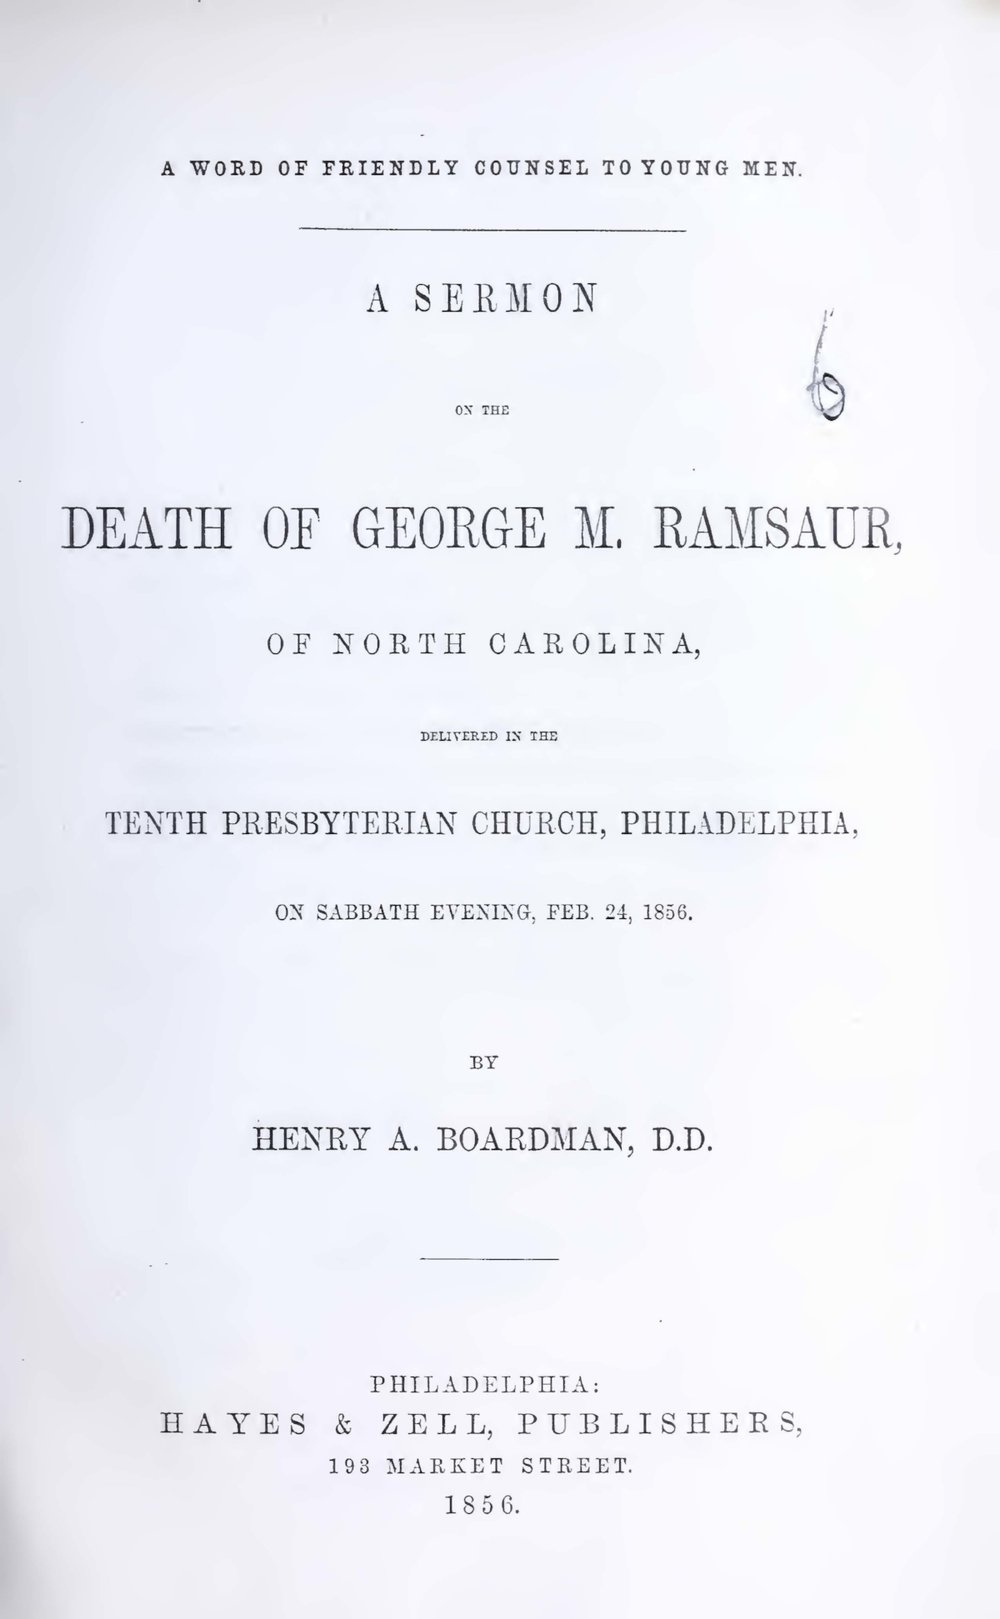 Boardman, Henry Augustus, A Word of Friendly Counsel to Young Men A Sermon on the Death of George M. Ramsaur Title Page.jpg